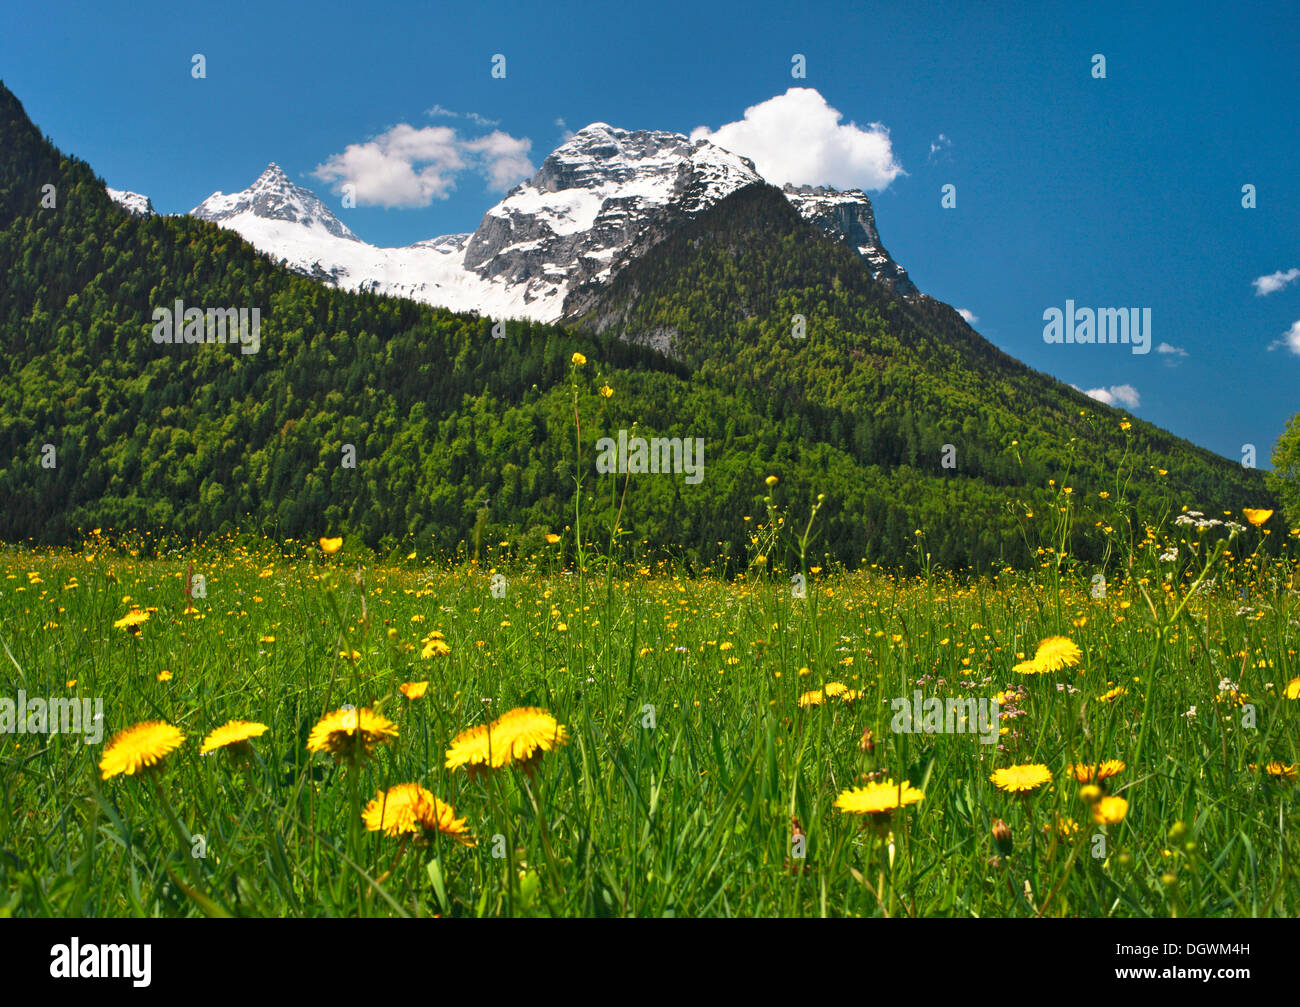 Meadow with dandelions in front of Mt Reifhorn near Lofer, Lofer, Salzburger Land, Salzburg State, Austria - Stock Image